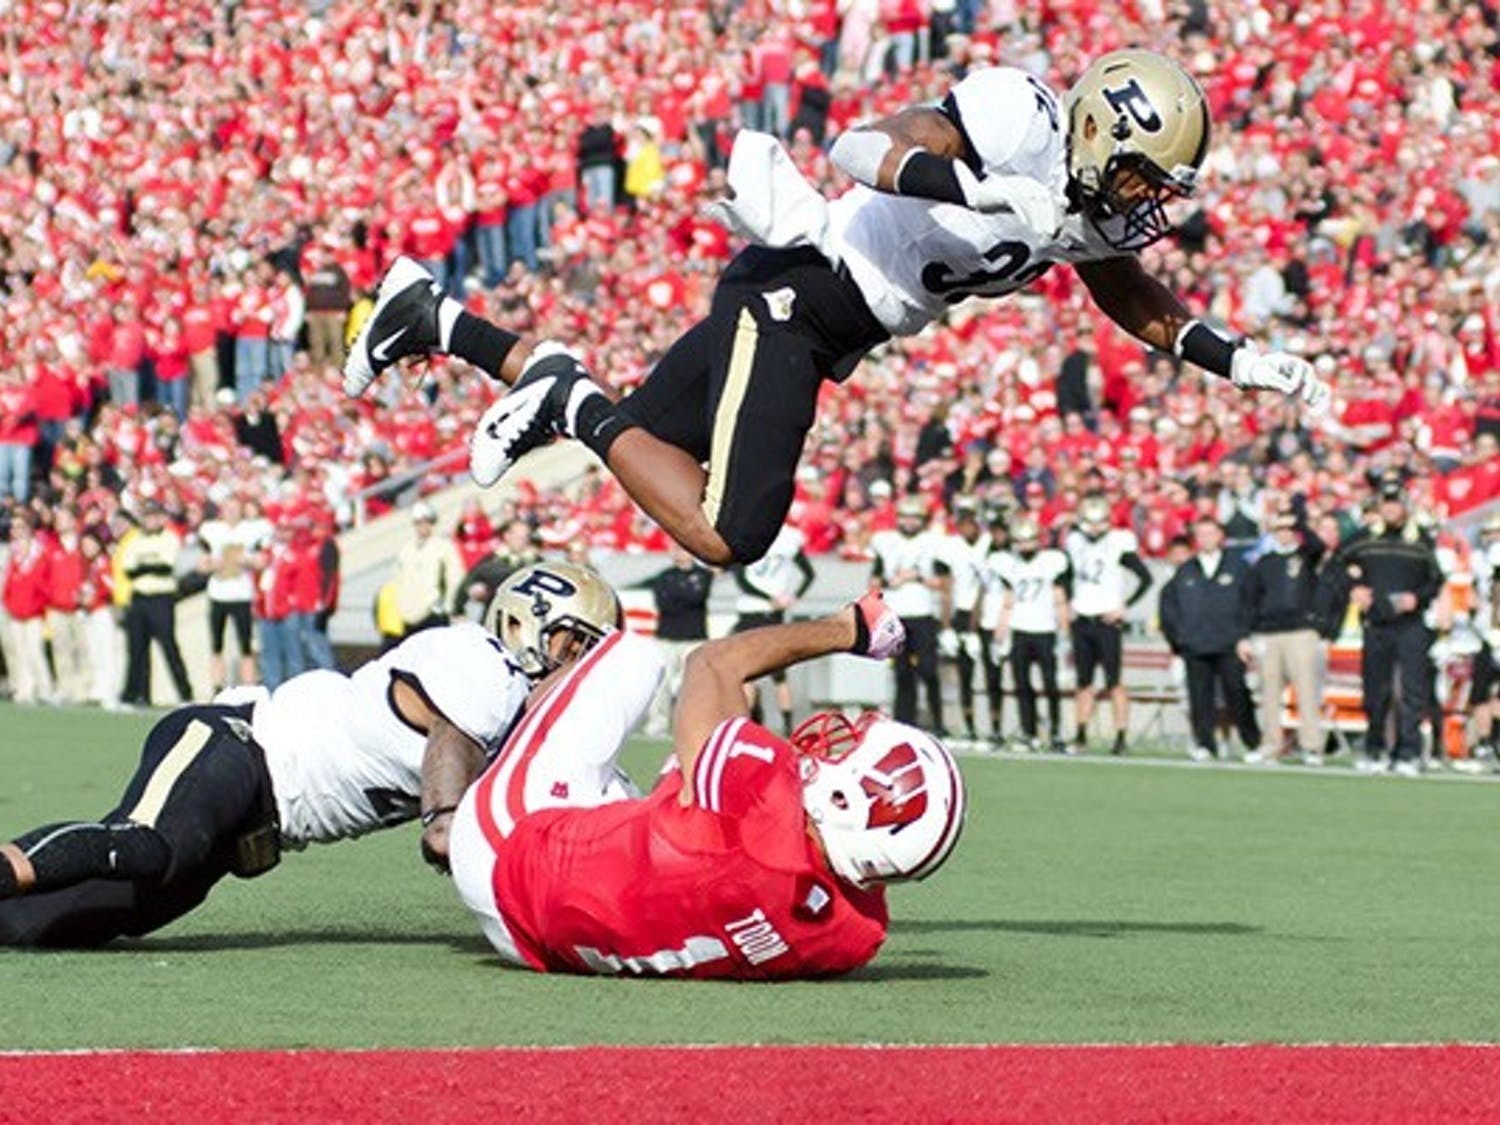 The UW Badgers took on the Purdue Boilermakers at Camp Randall as the Badgers improved to 7-2 overall and 3-2 in Big Ten play.